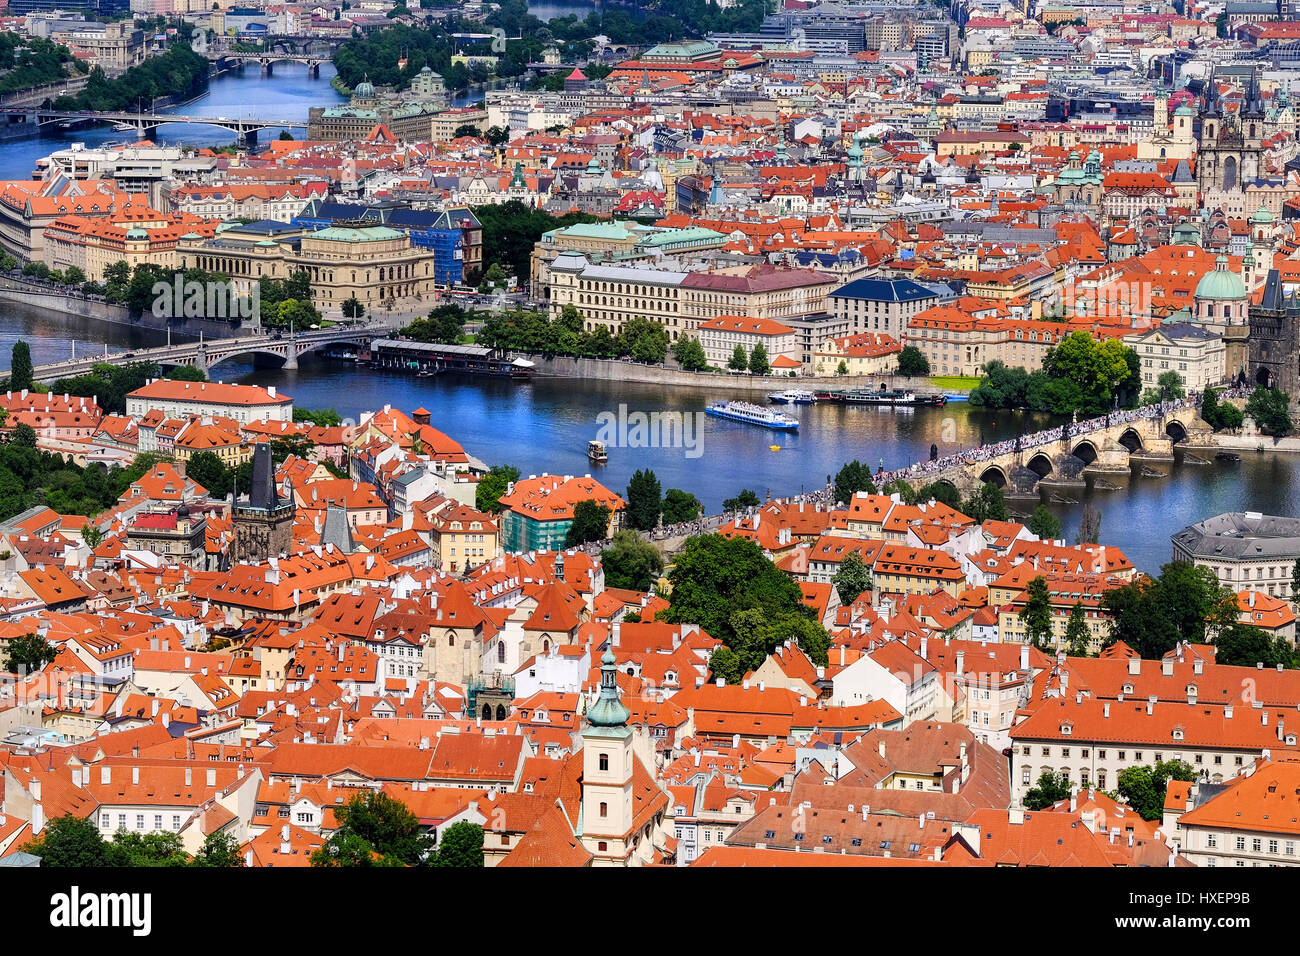 View of Prague (Czech Republic) and the famous Charles Bridge over the River Vitava, as seen from the Petrin lookout Stock Photo